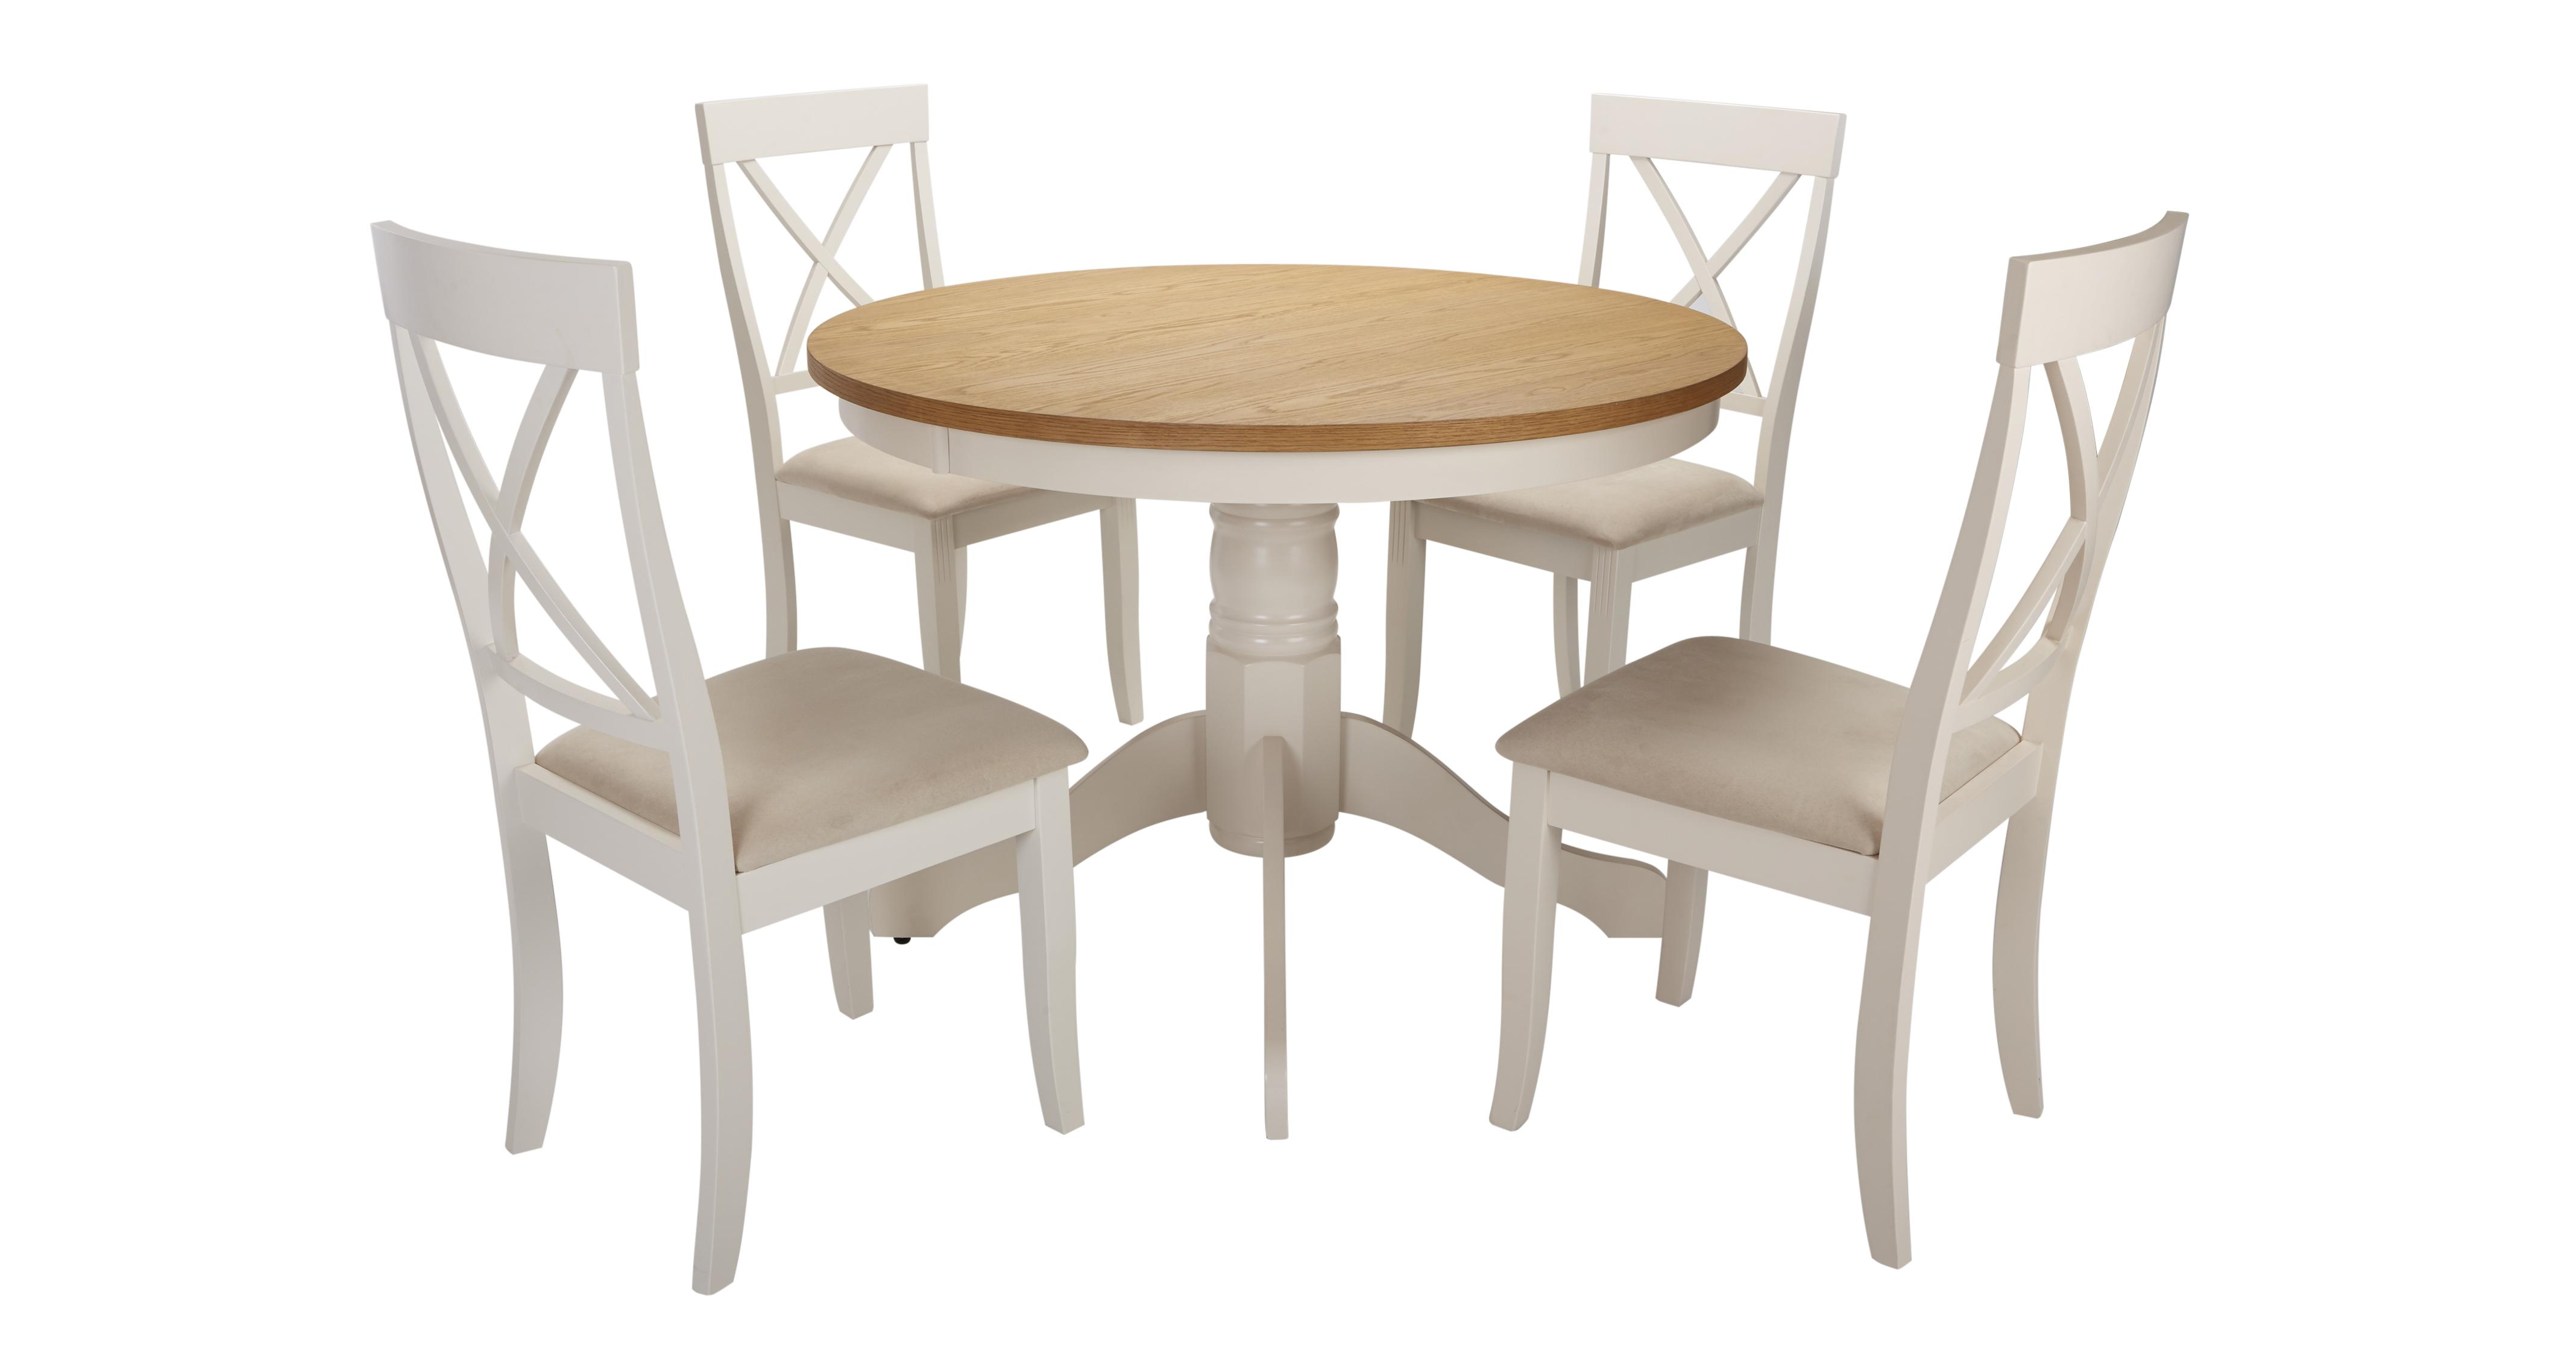 Enjoyable Evesham Round Pedestal Dining Table 4 Chairs Download Free Architecture Designs Viewormadebymaigaardcom